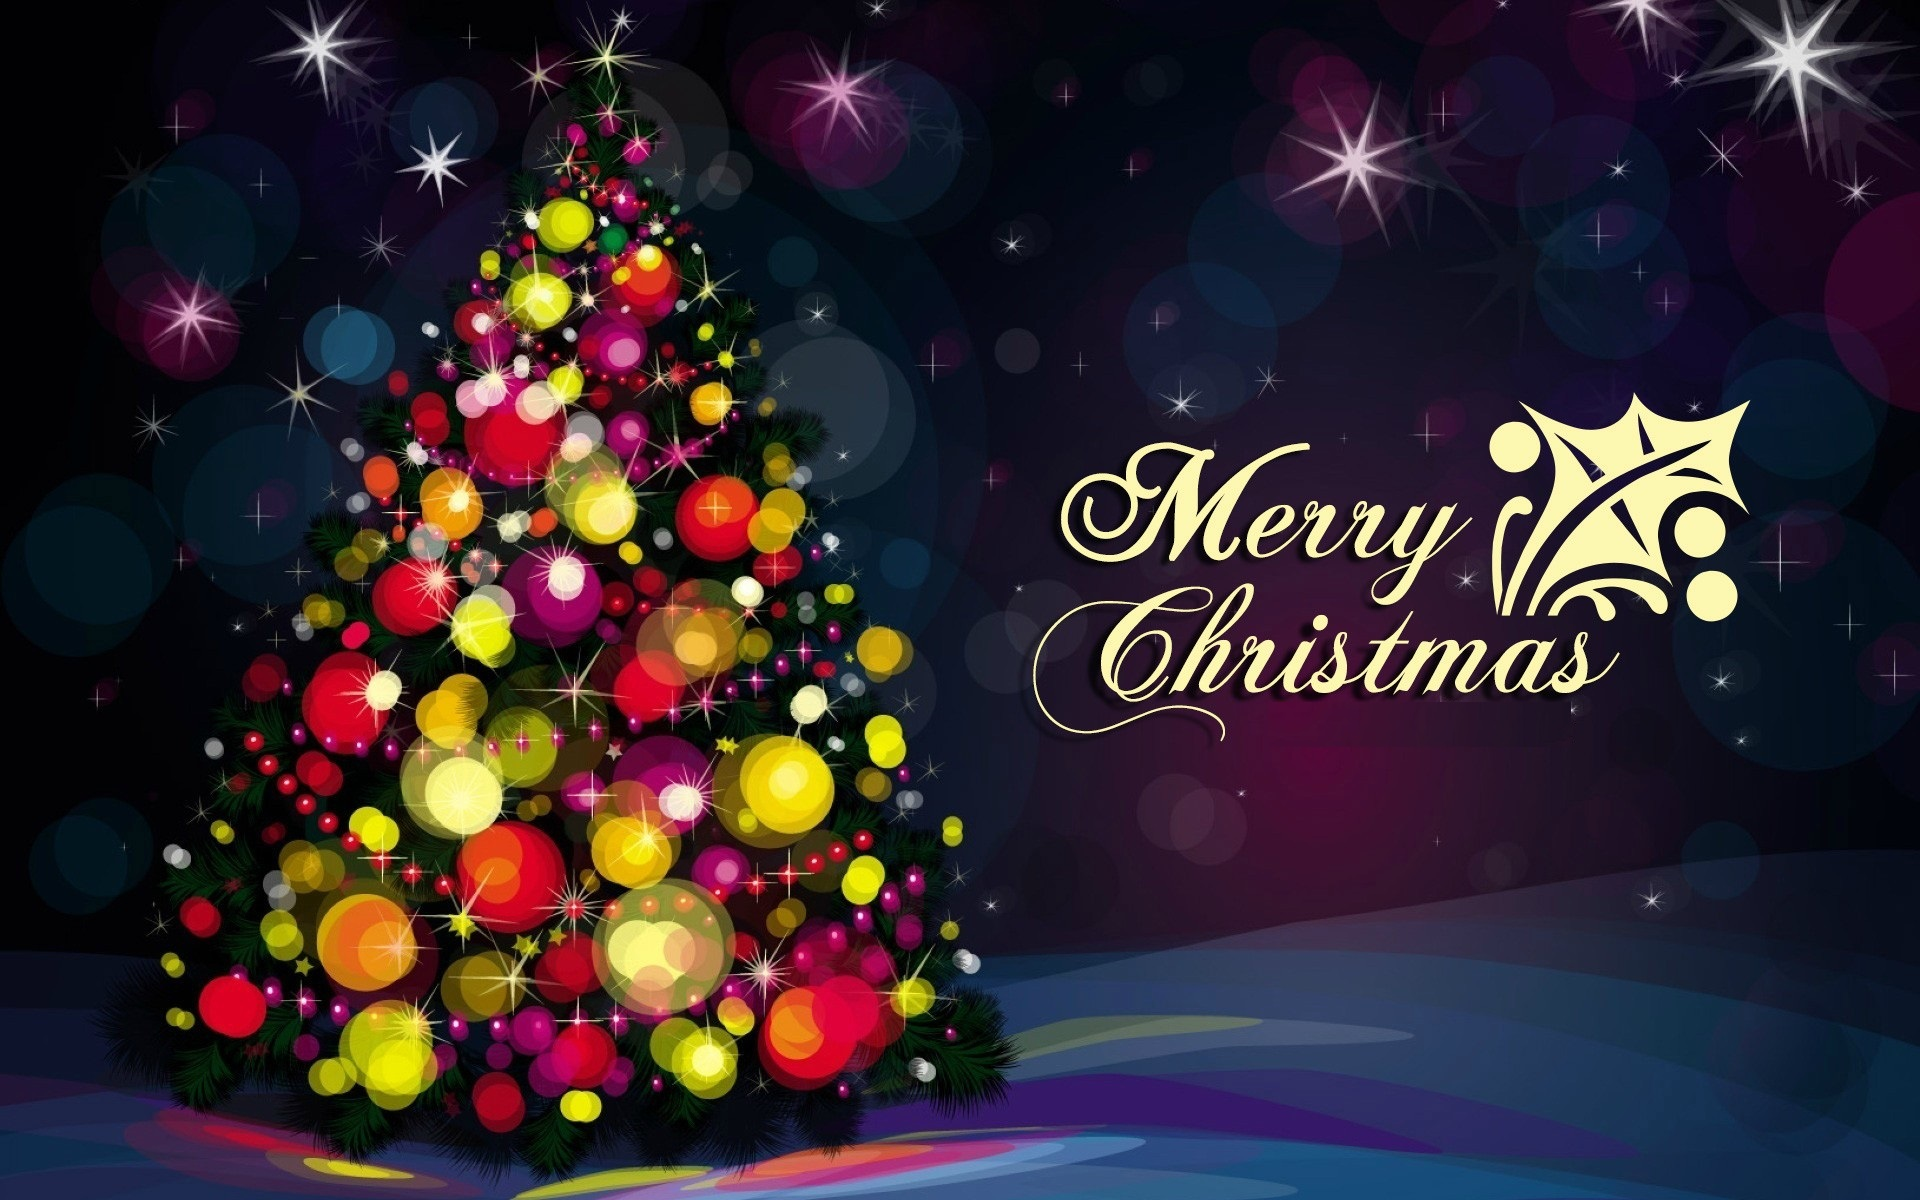 hd merrry christmas tree photos download